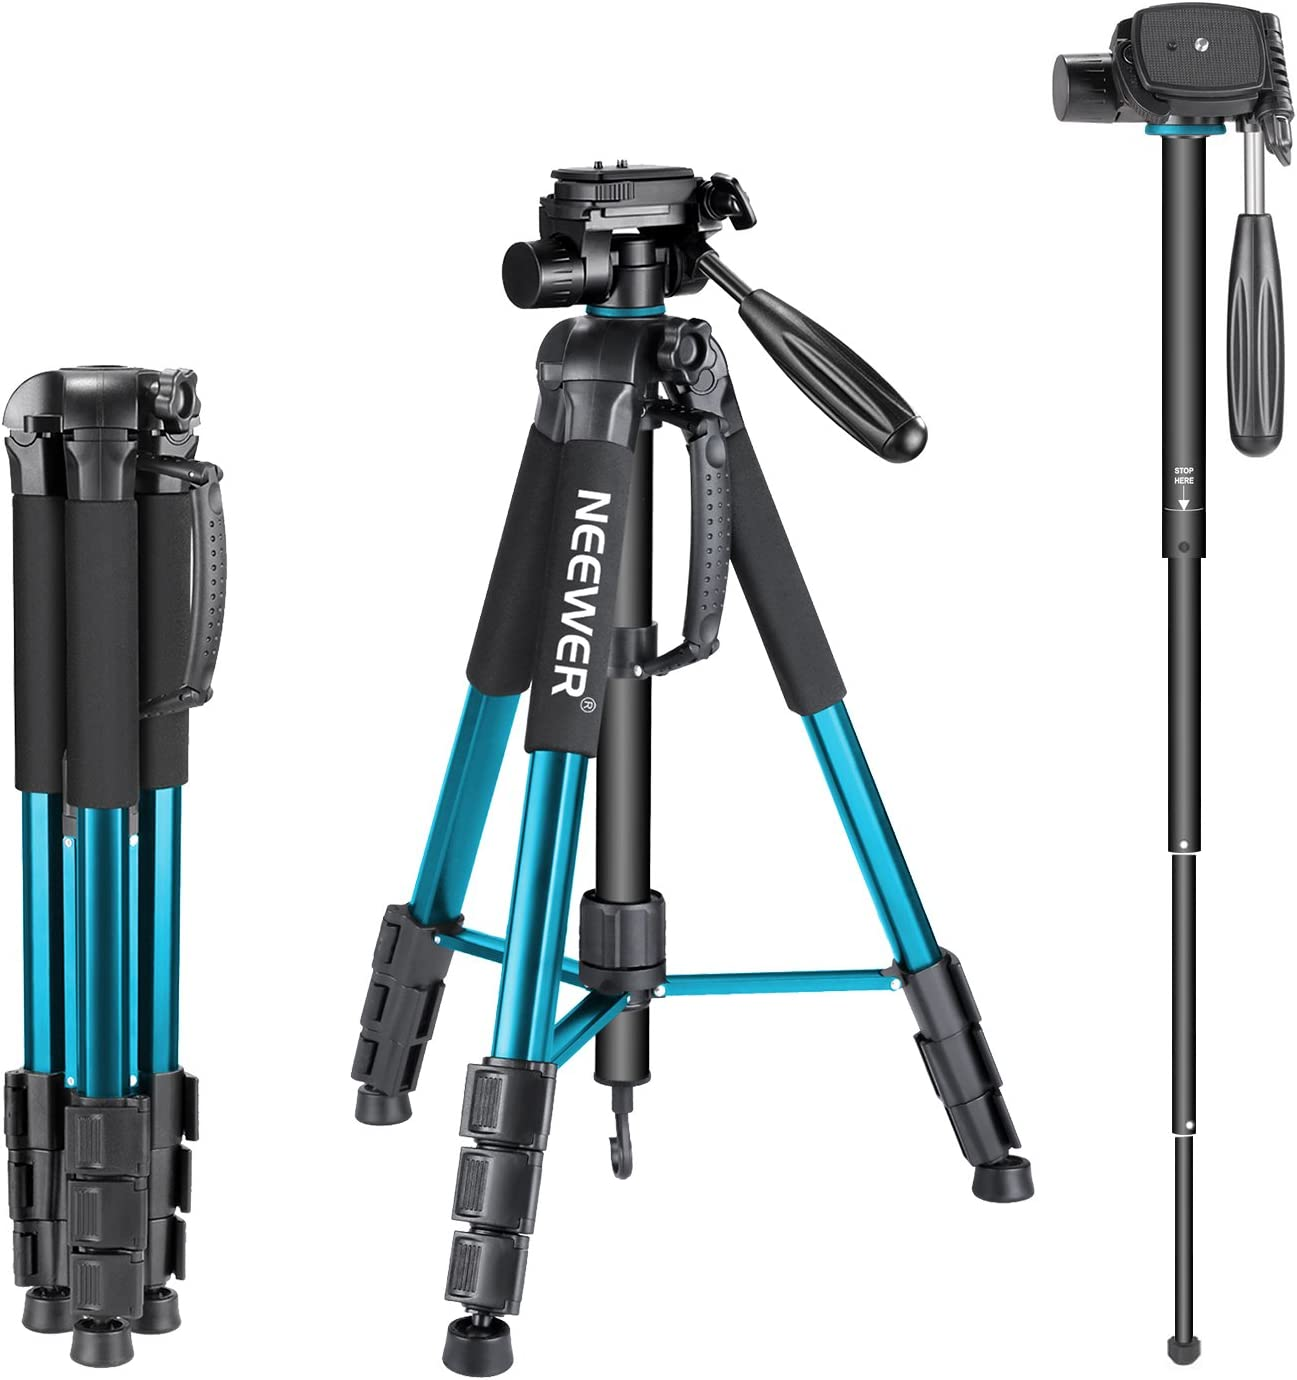 Neewer Portable 70 inches/177 centimeters Aluminum Alloy Camera Tripod Monopod with 3-Way Swivel Pan Head, Bag for DSLR Camera, DV Video Camcorder, Load up to 8.8 pounds/4 kilograms Blue(SAB264) : Camera & Photo